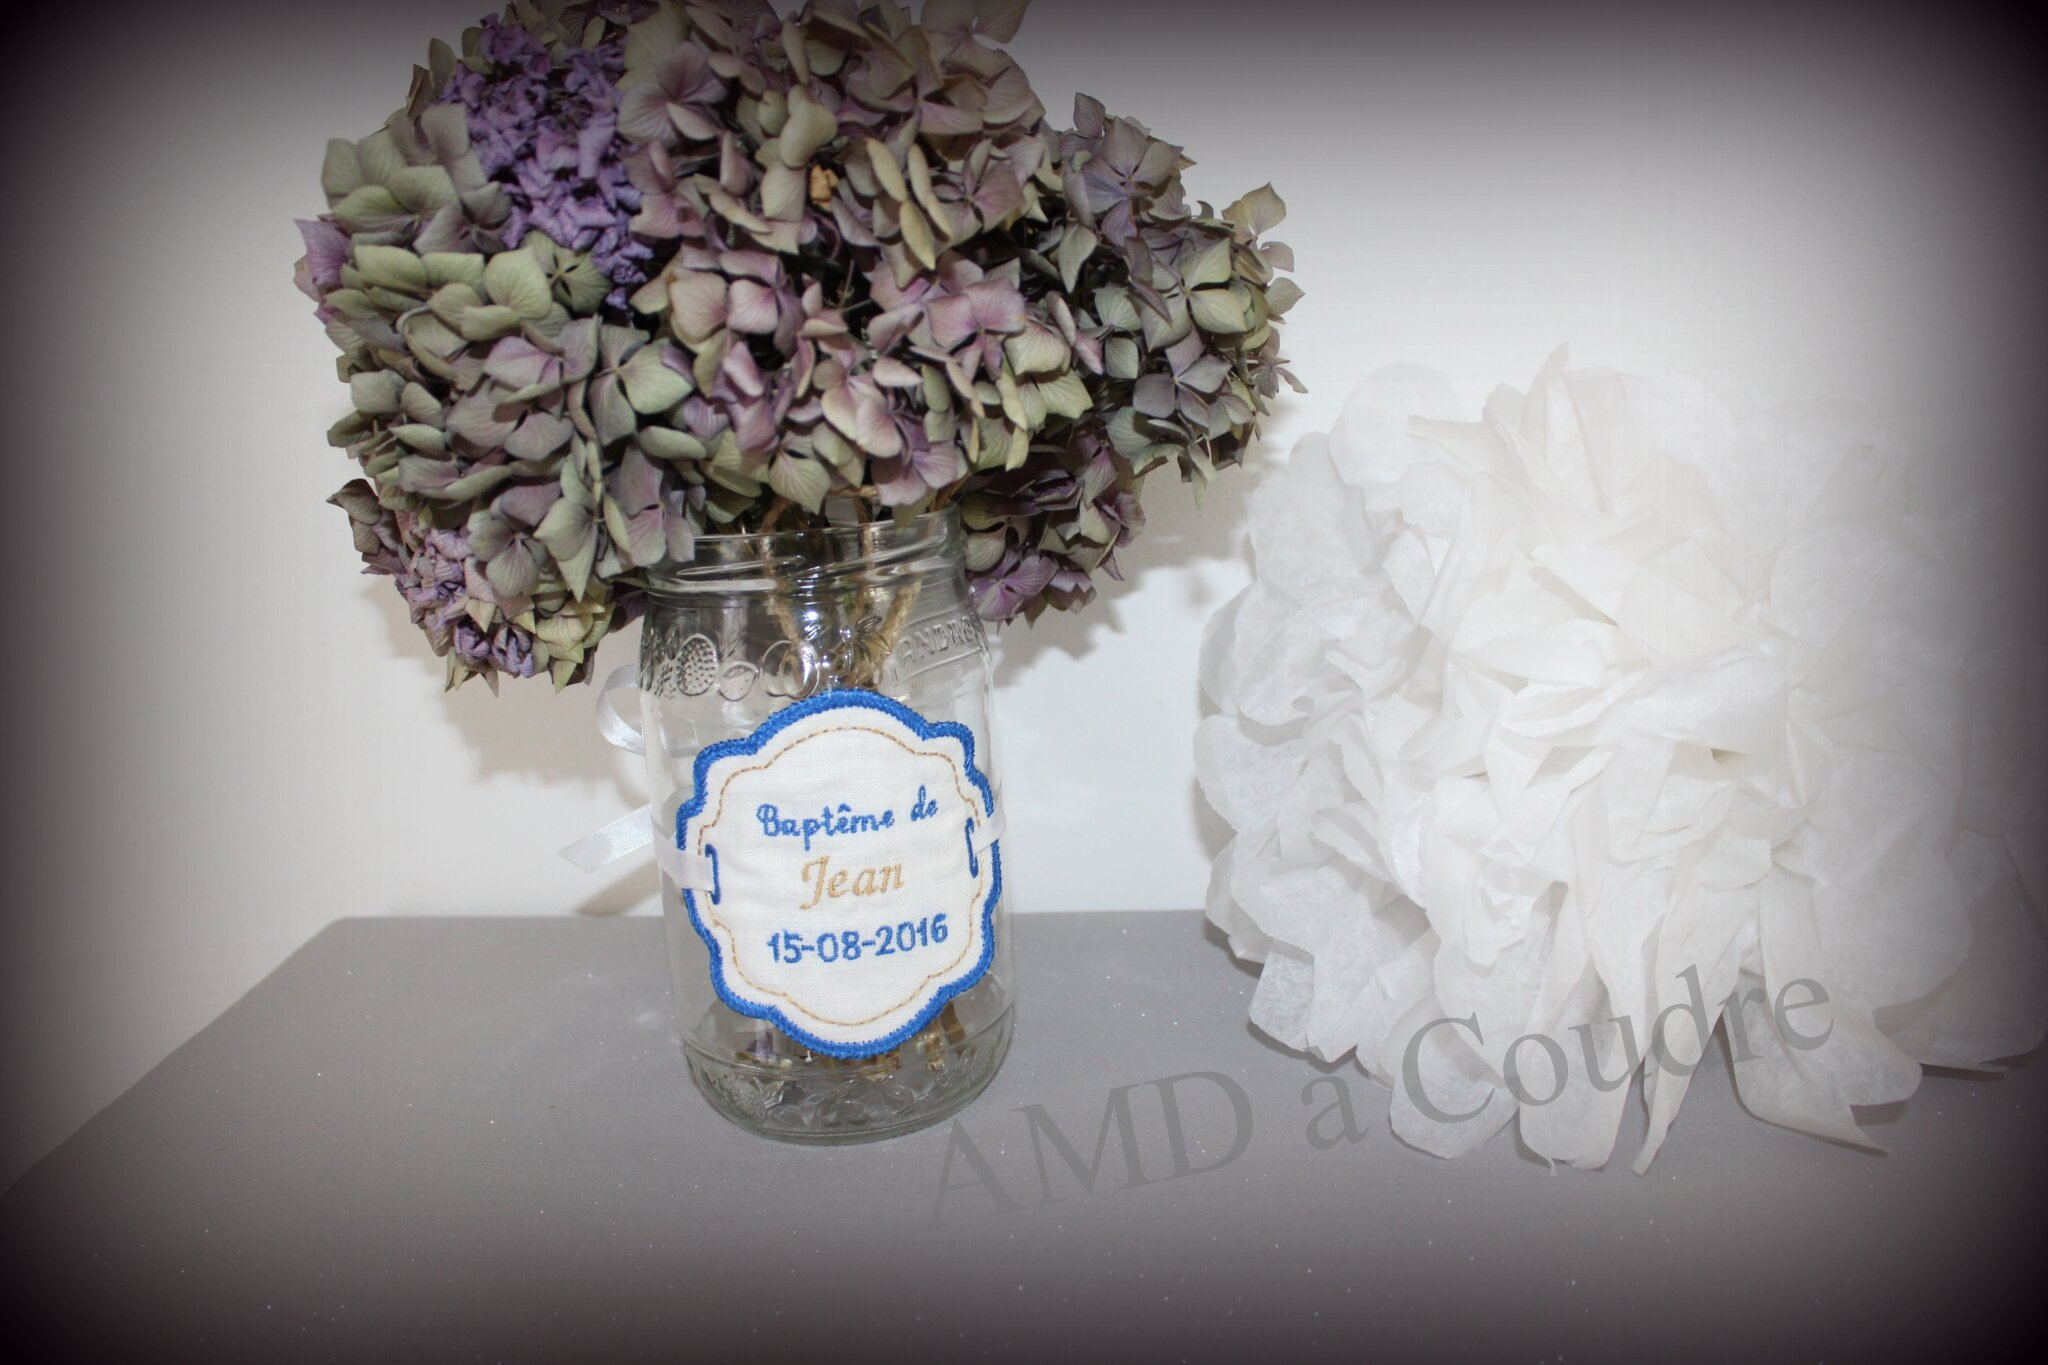 ETIQUETTE PAMPILLE PERSONNALISEE POUR VASE OU BOCAUX CANDY BAR BRODERIE AMD A COUDRE (2)